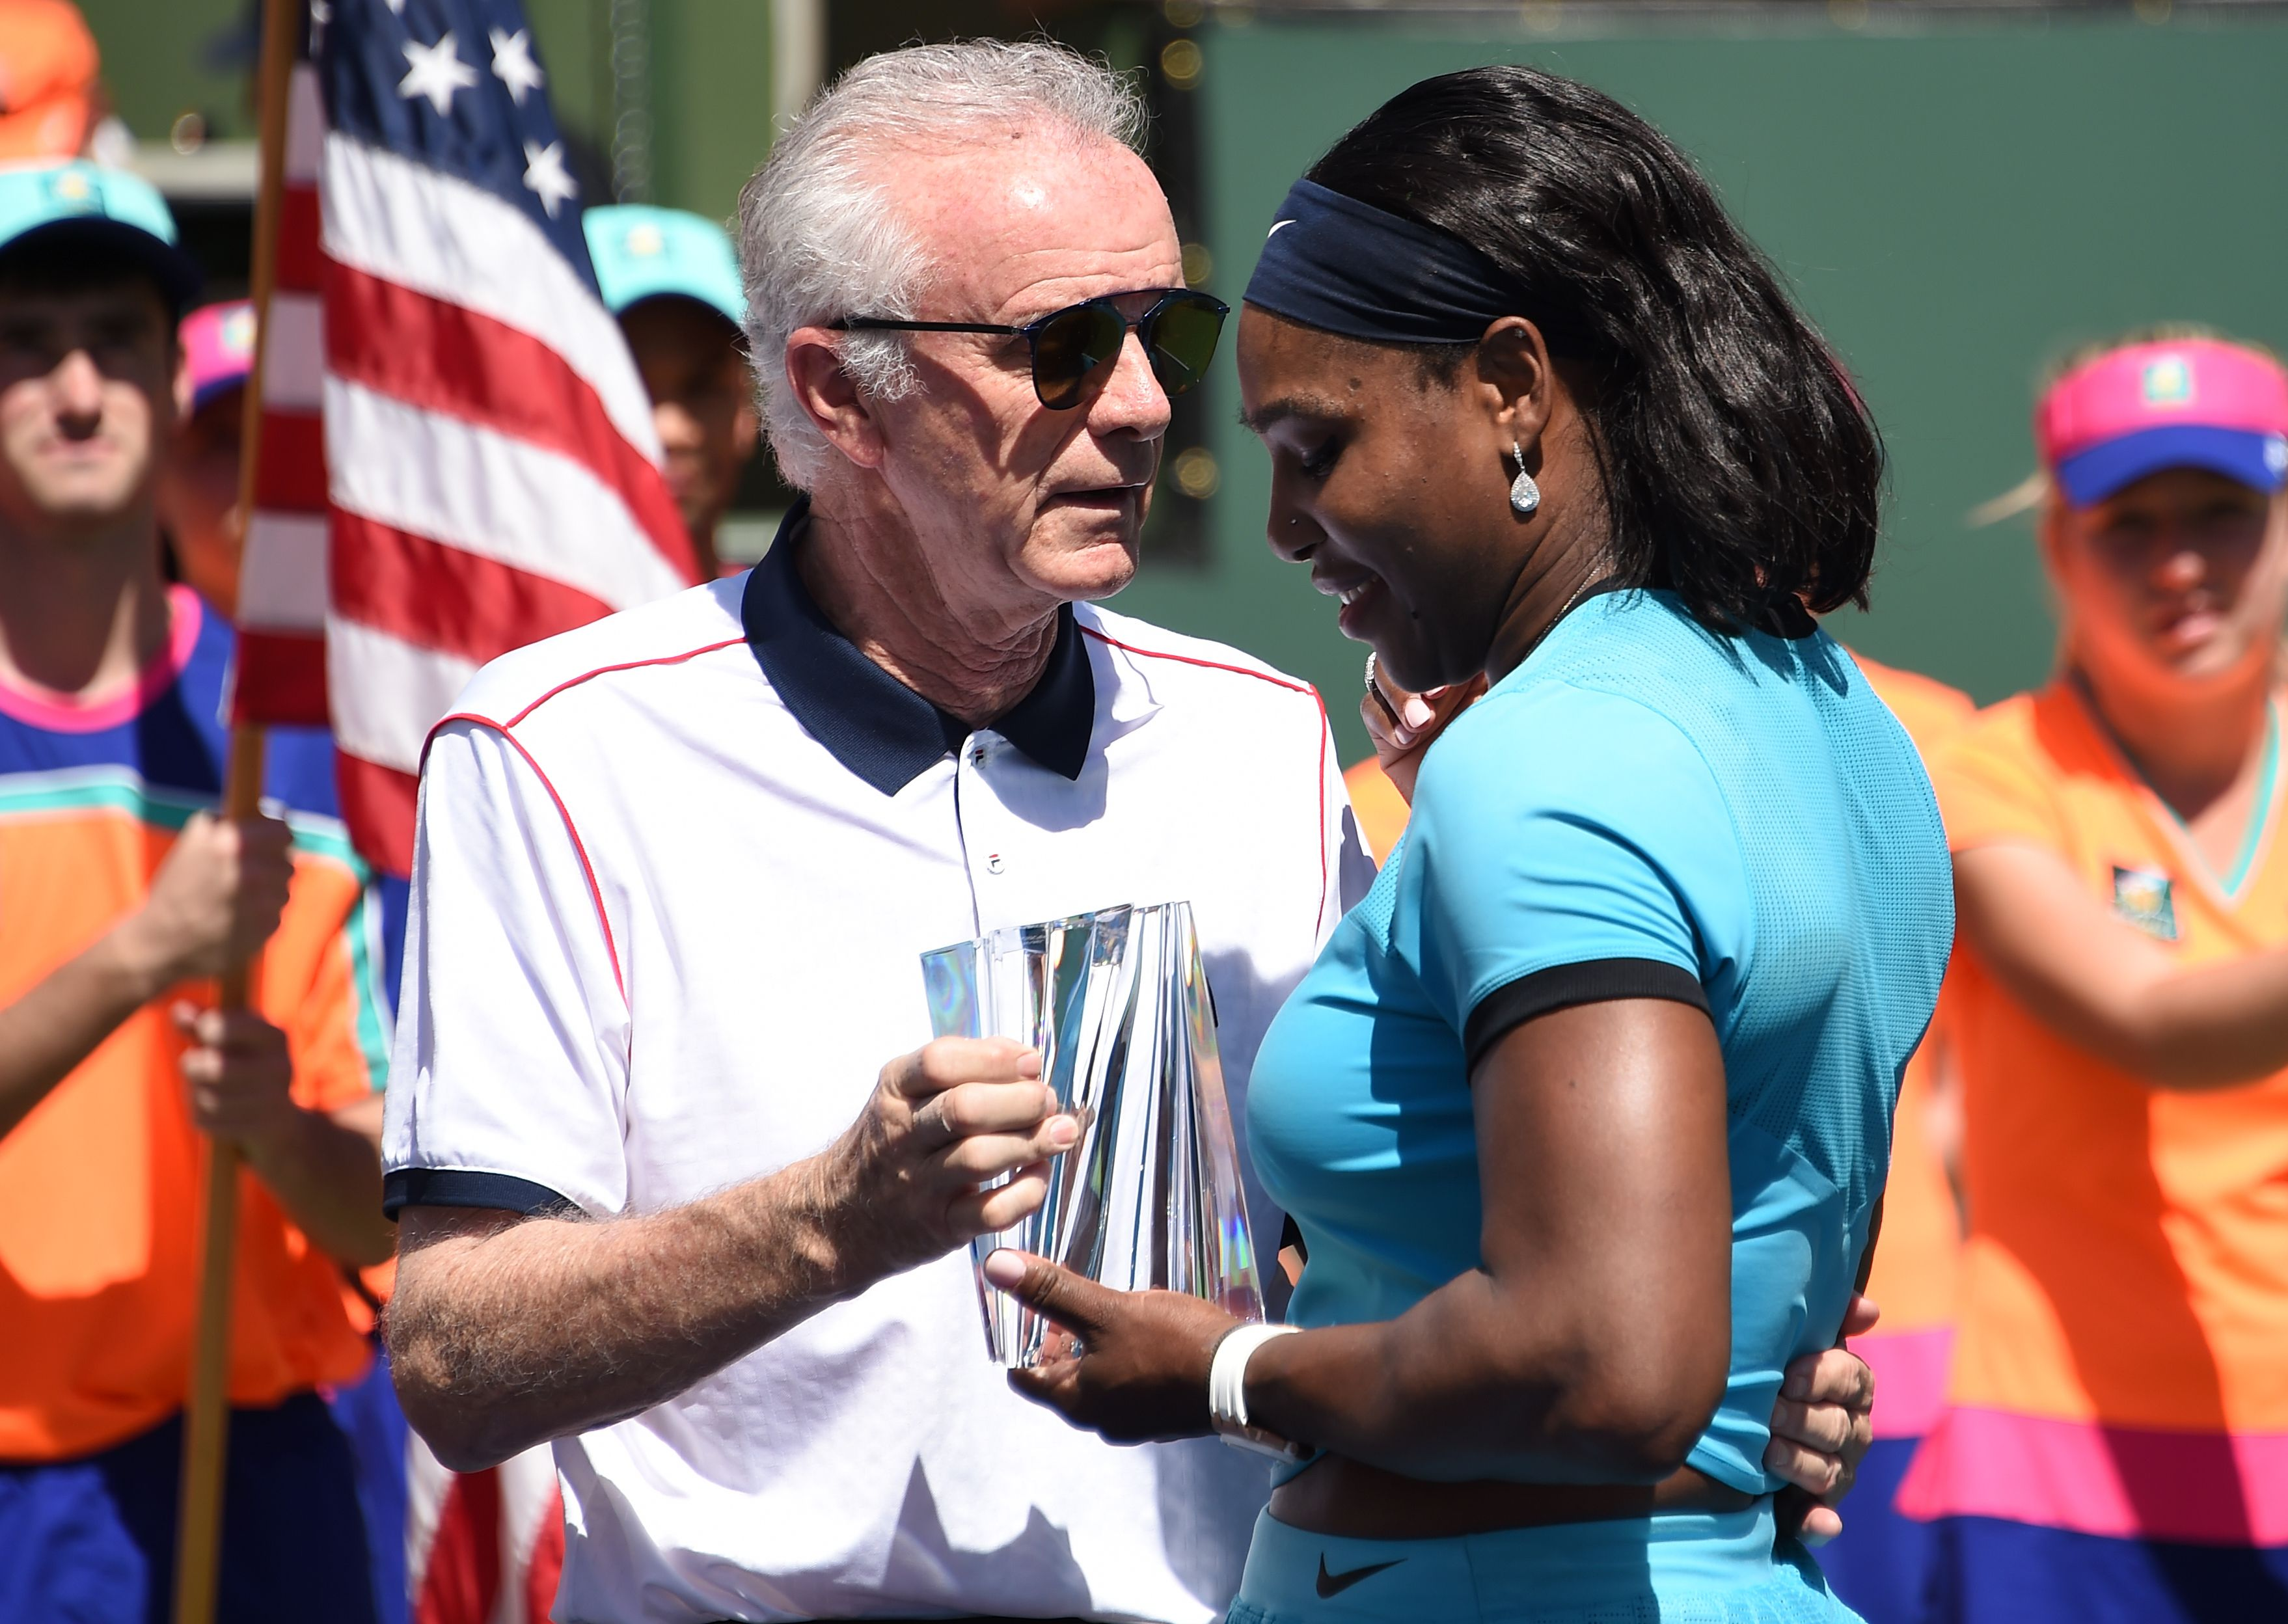 Indian Wells CEO says women 'ride on the coattails' of men